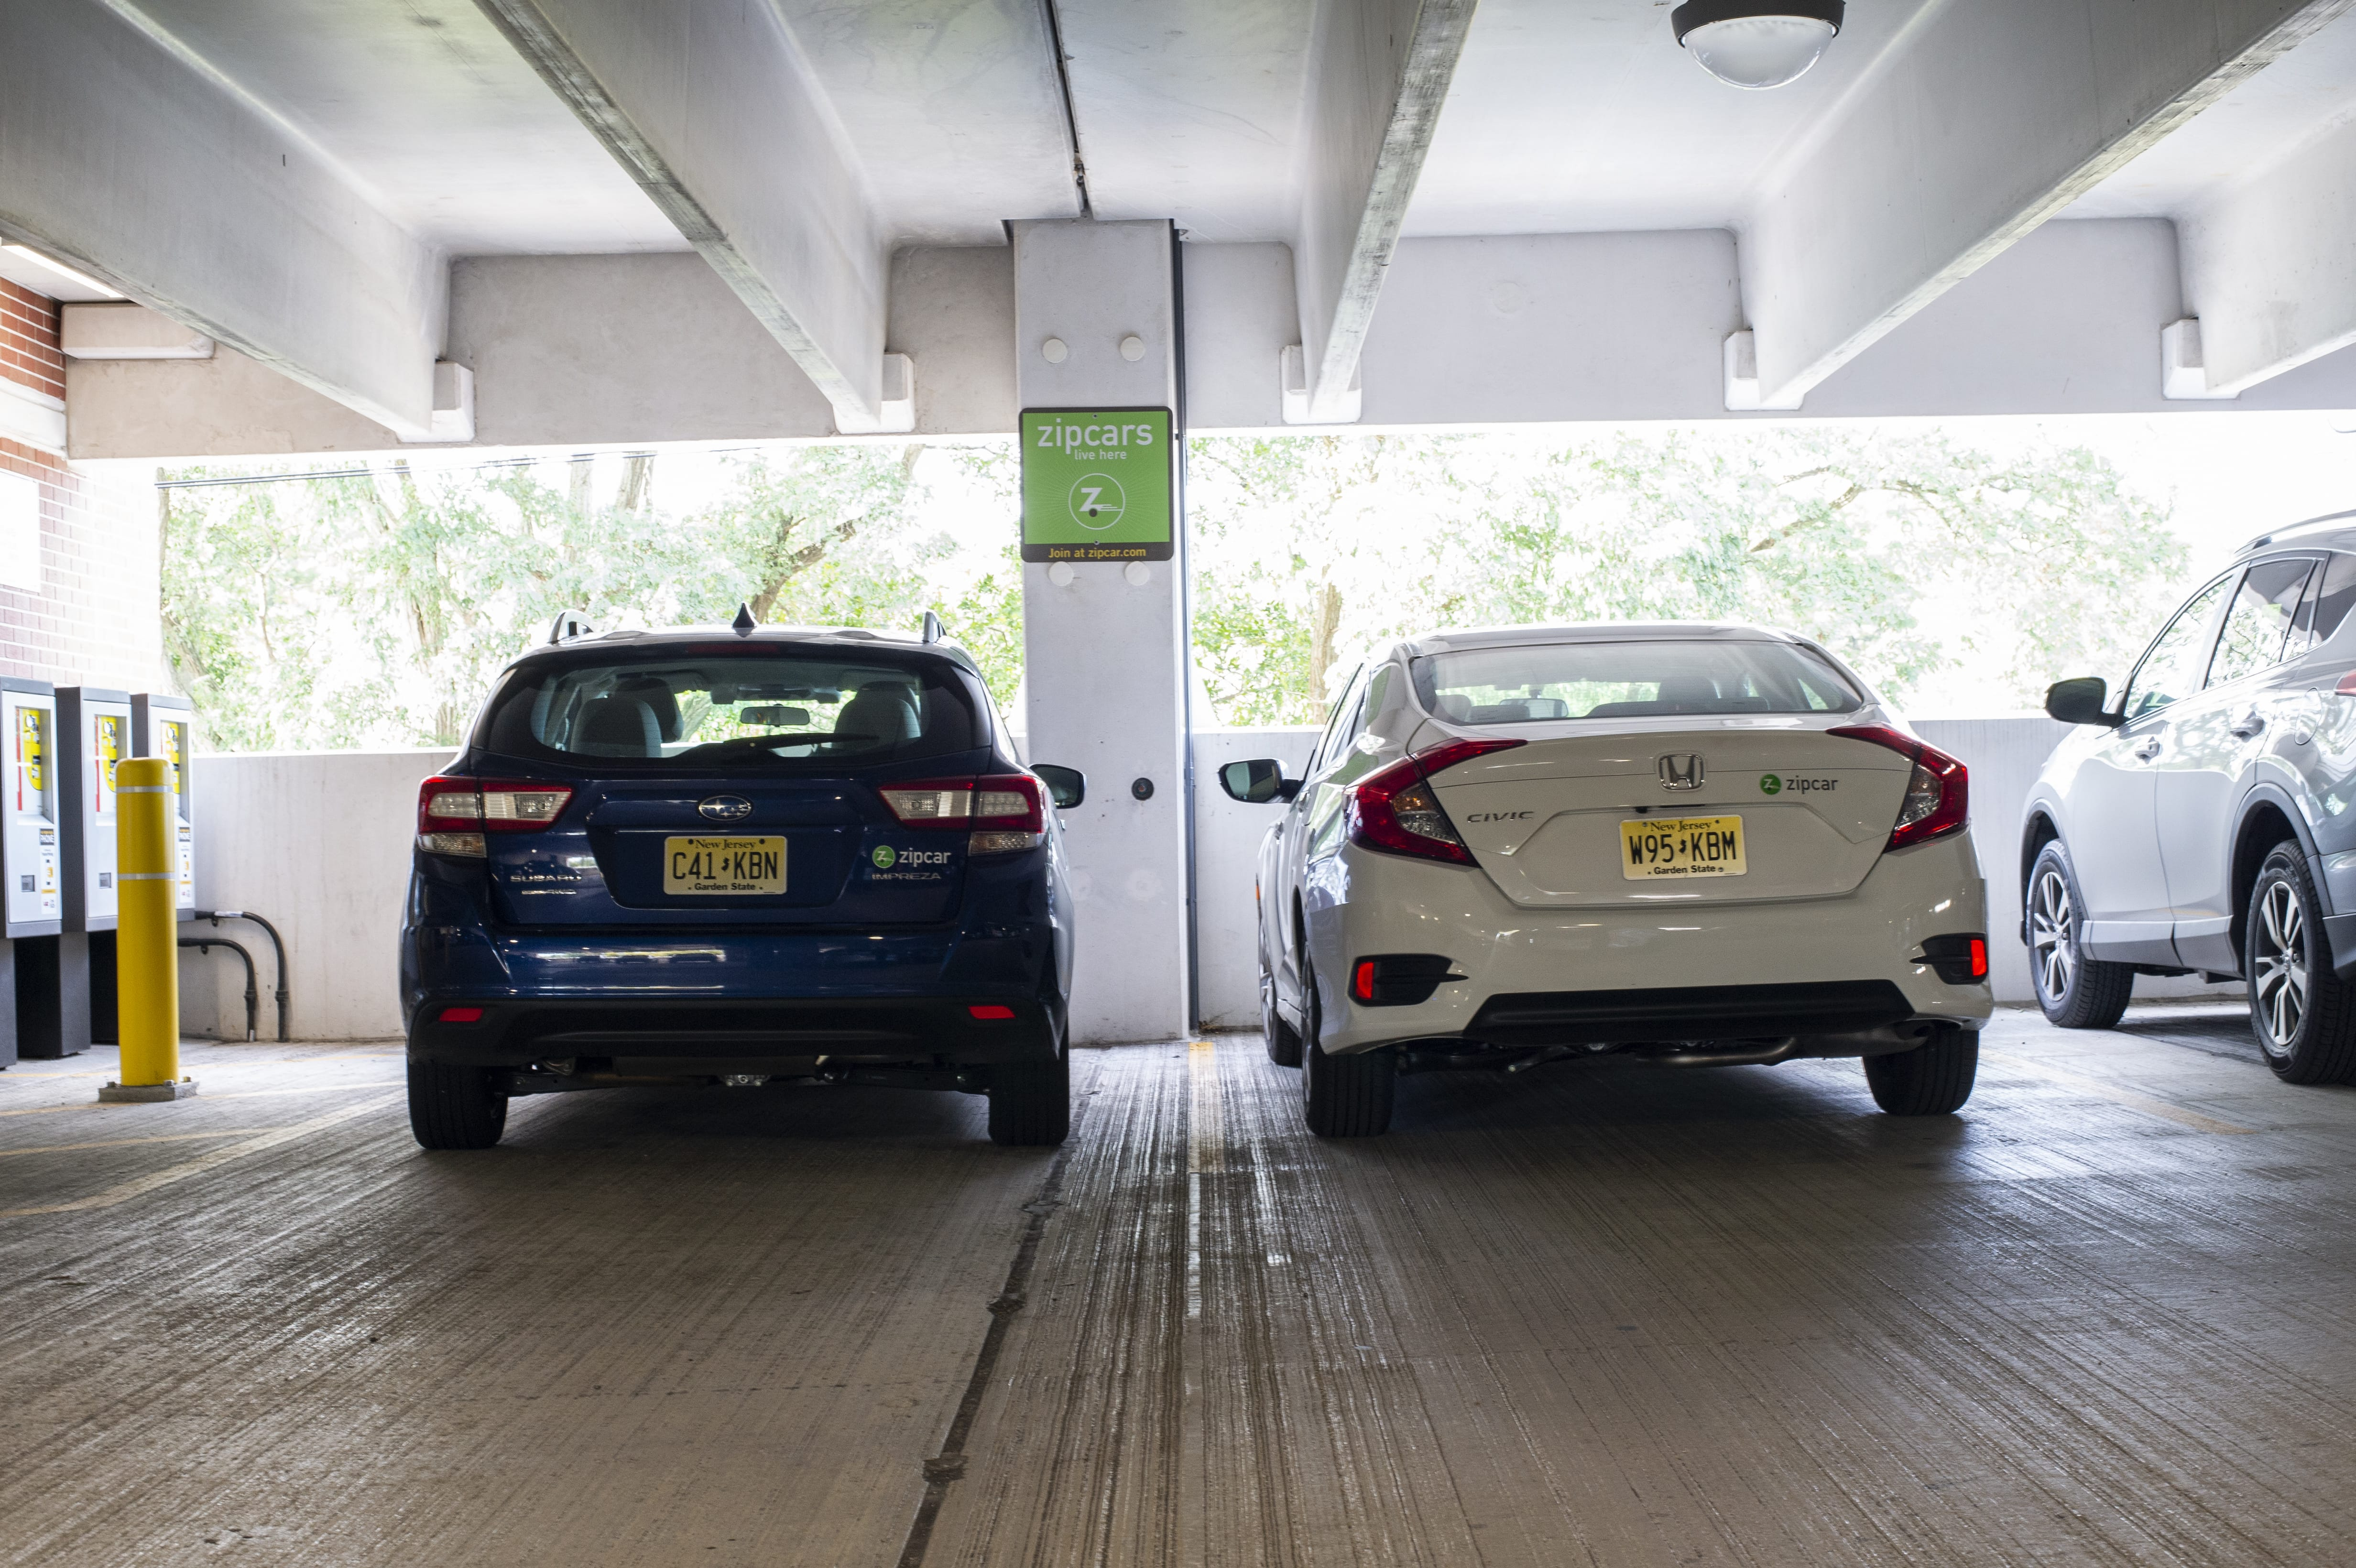 zipcars parked in spots